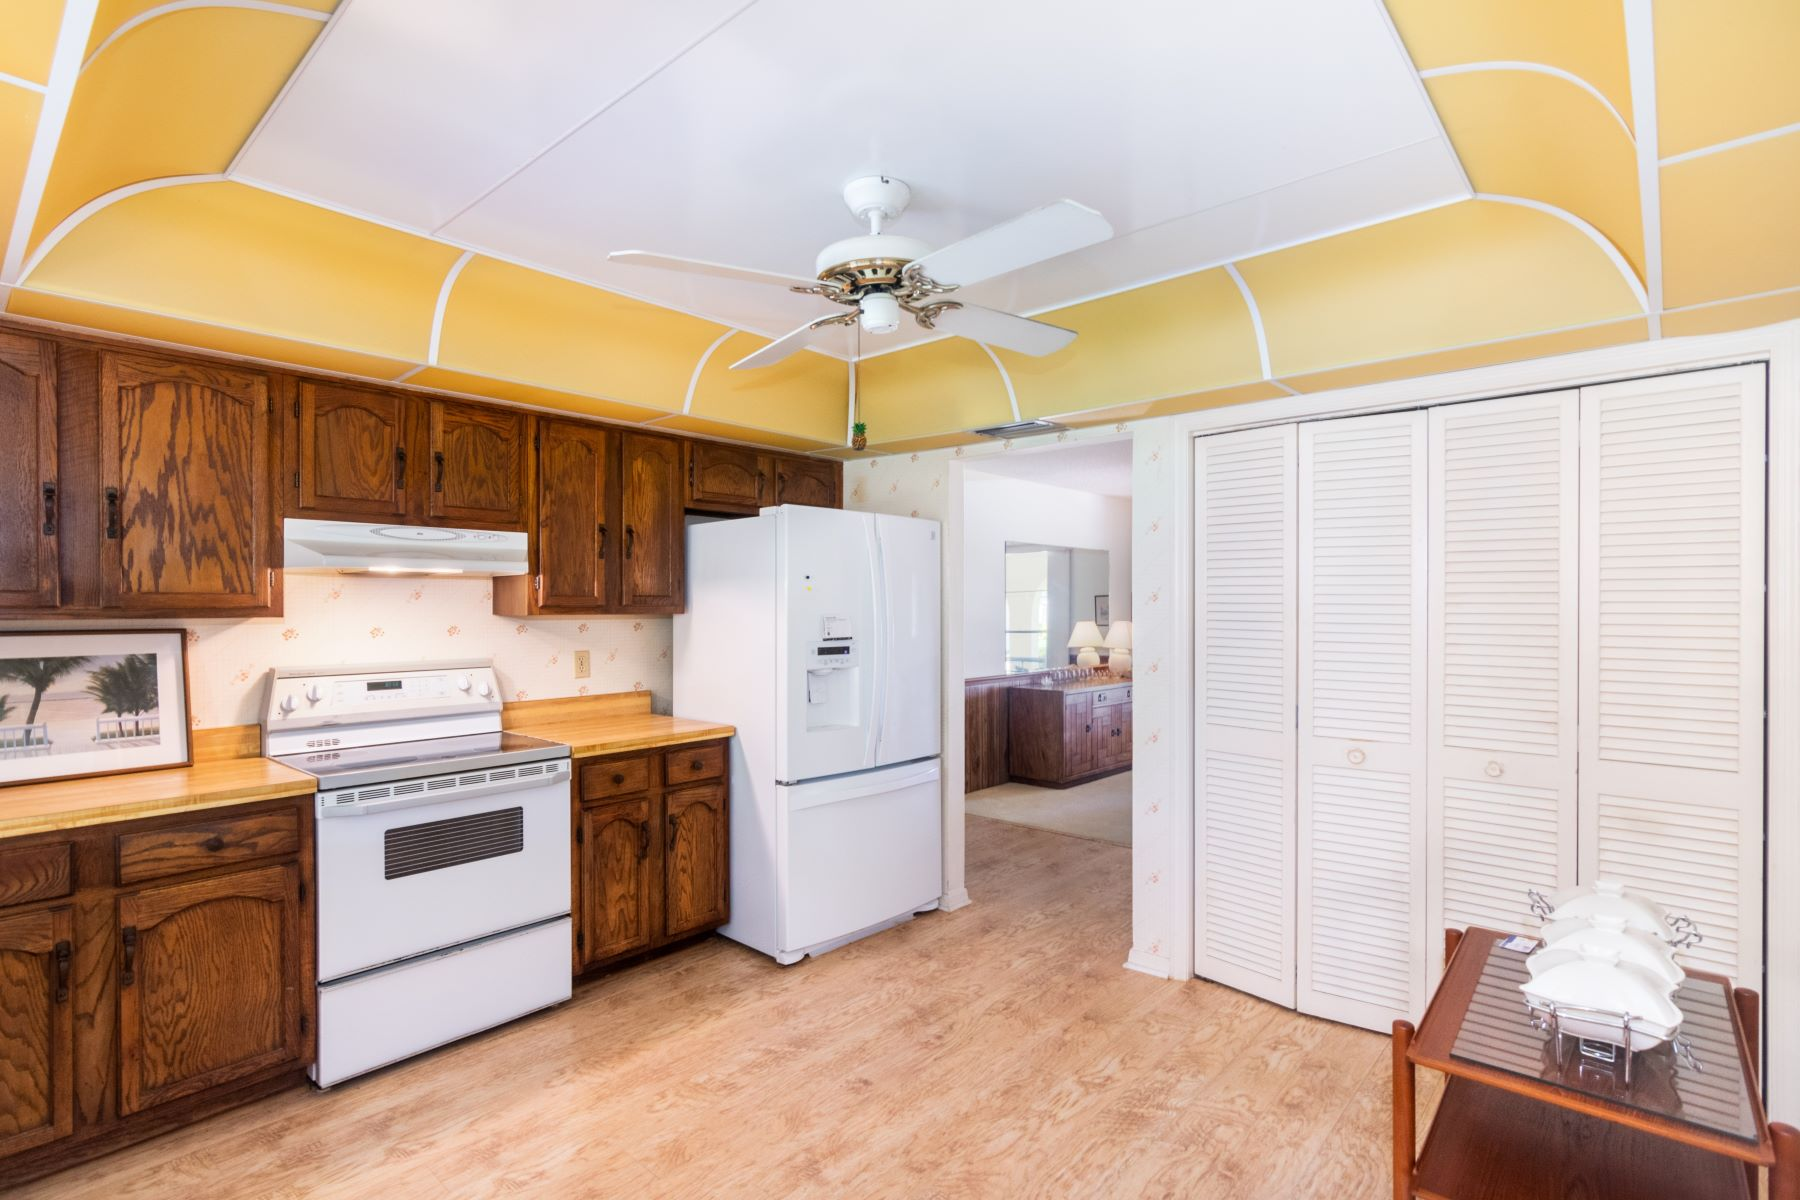 Additional photo for property listing at 535 Temple Street, Satellite Beach, FL 535 Temple Street Satellite Beach, Florida 32937 United States